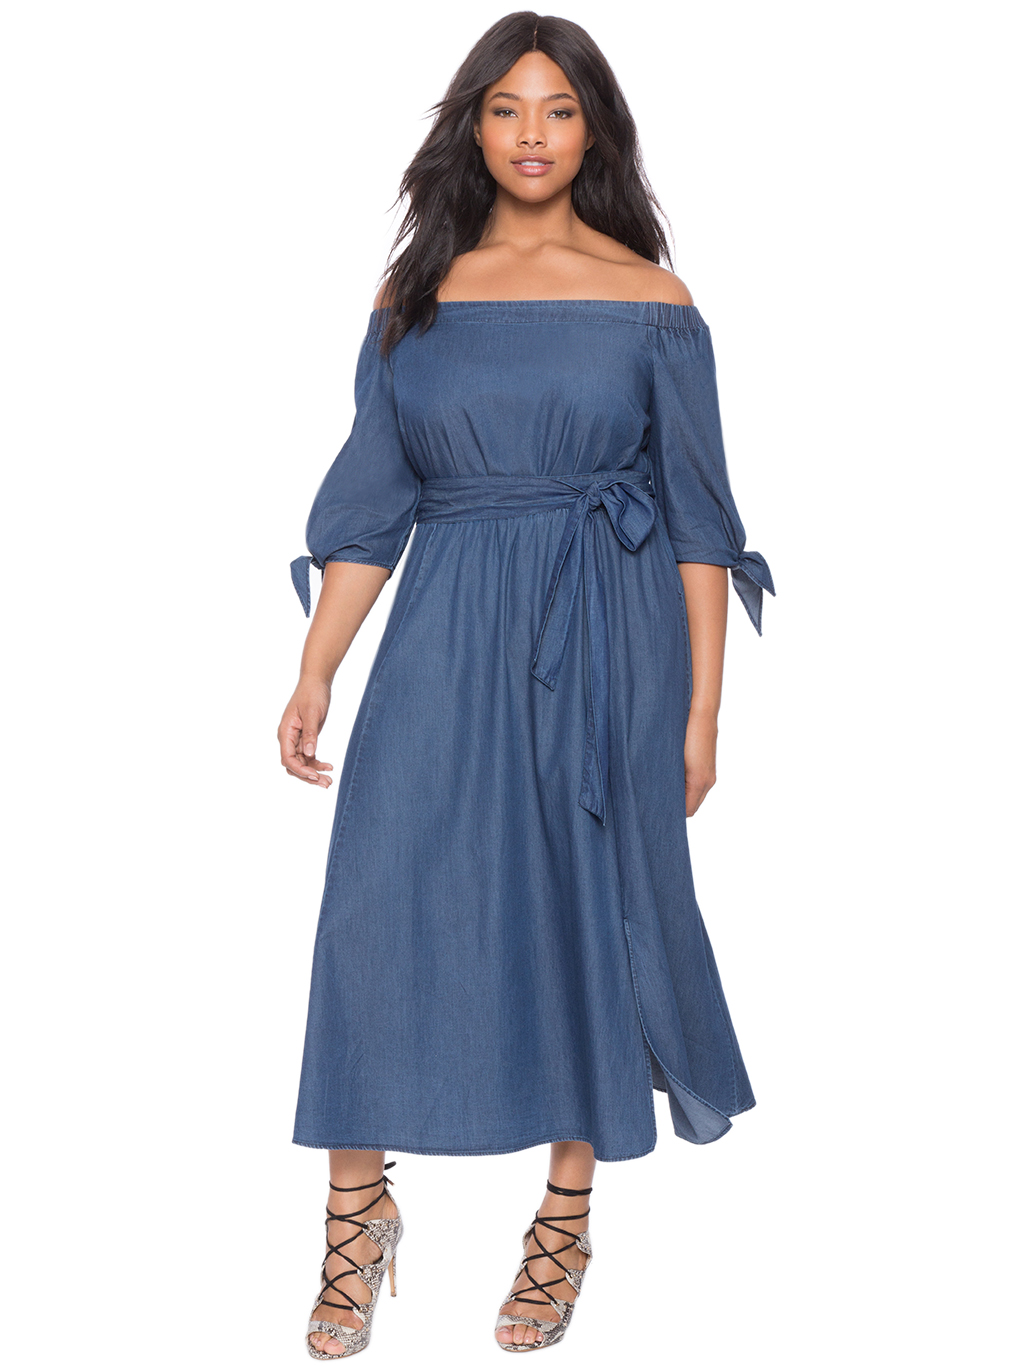 plus size attire in royal blue